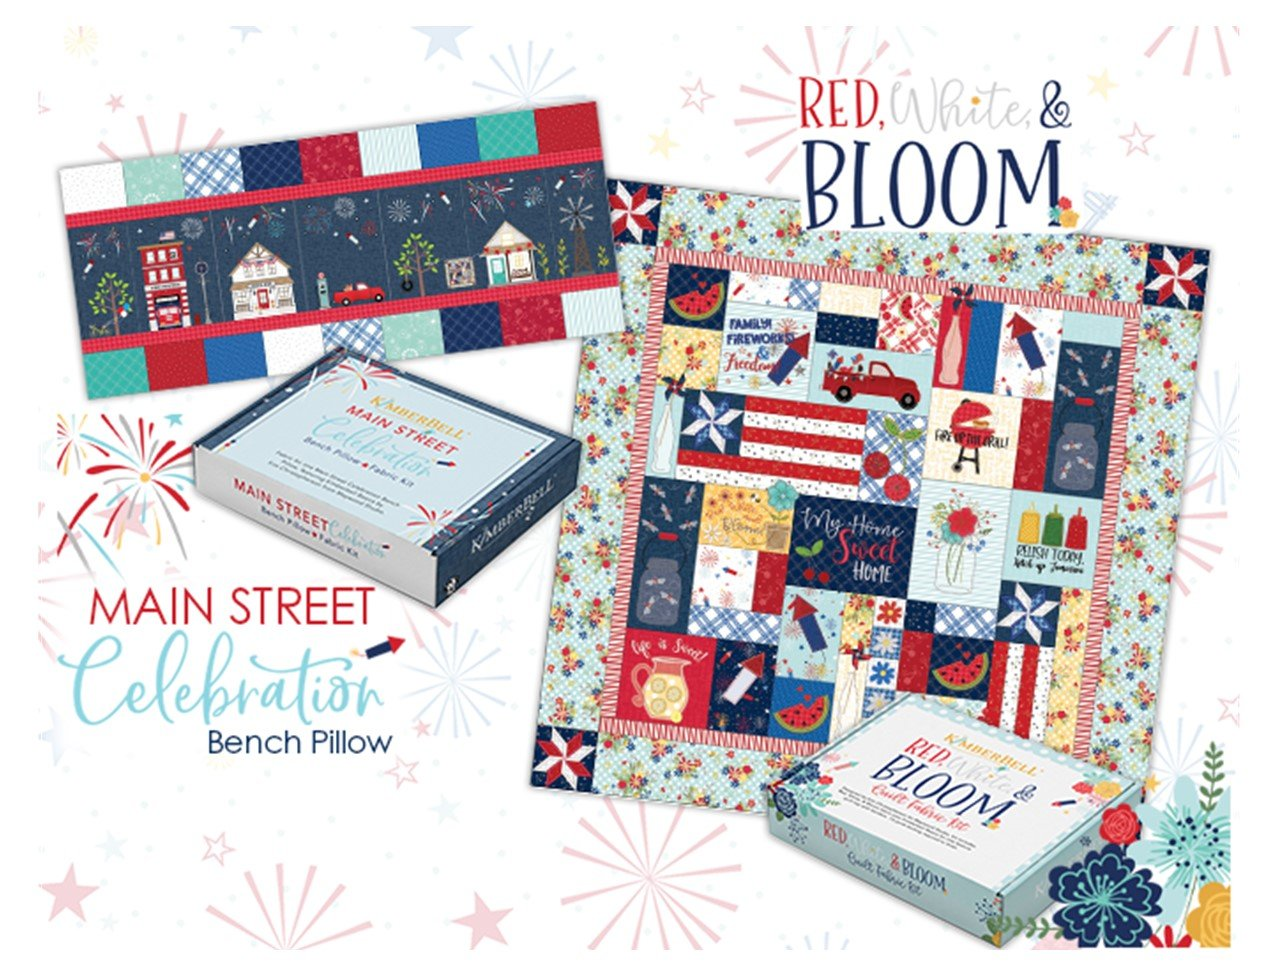 I want it all - Sewing Version: Kimberbell Red, White & Bloom Bench Pillow and QuiltSewing Version